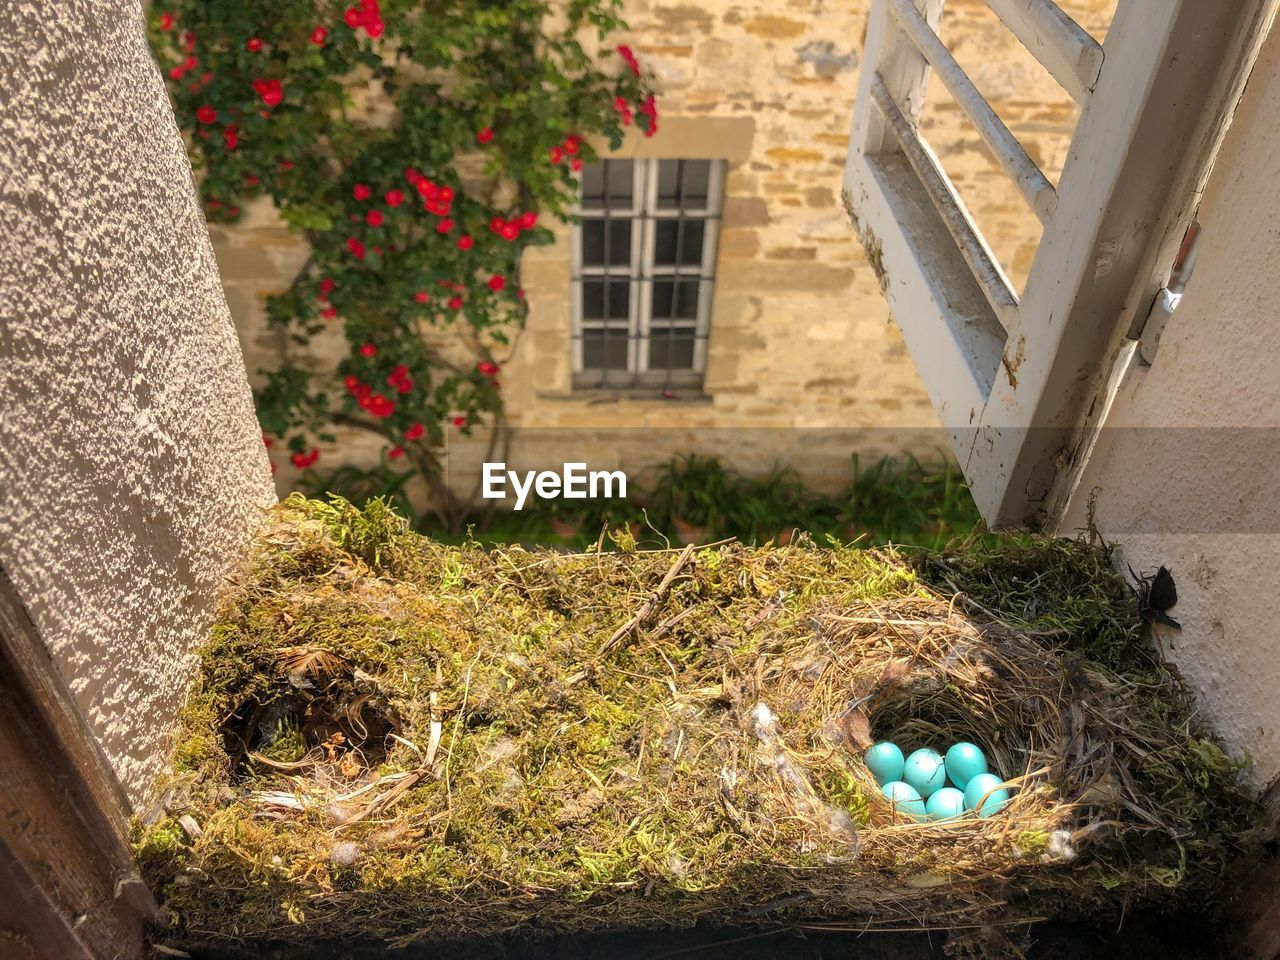 plant, nature, architecture, built structure, day, flower, flowering plant, high angle view, building exterior, window, no people, building, outdoors, potted plant, growth, grass, egg, house, sunlight, close-up